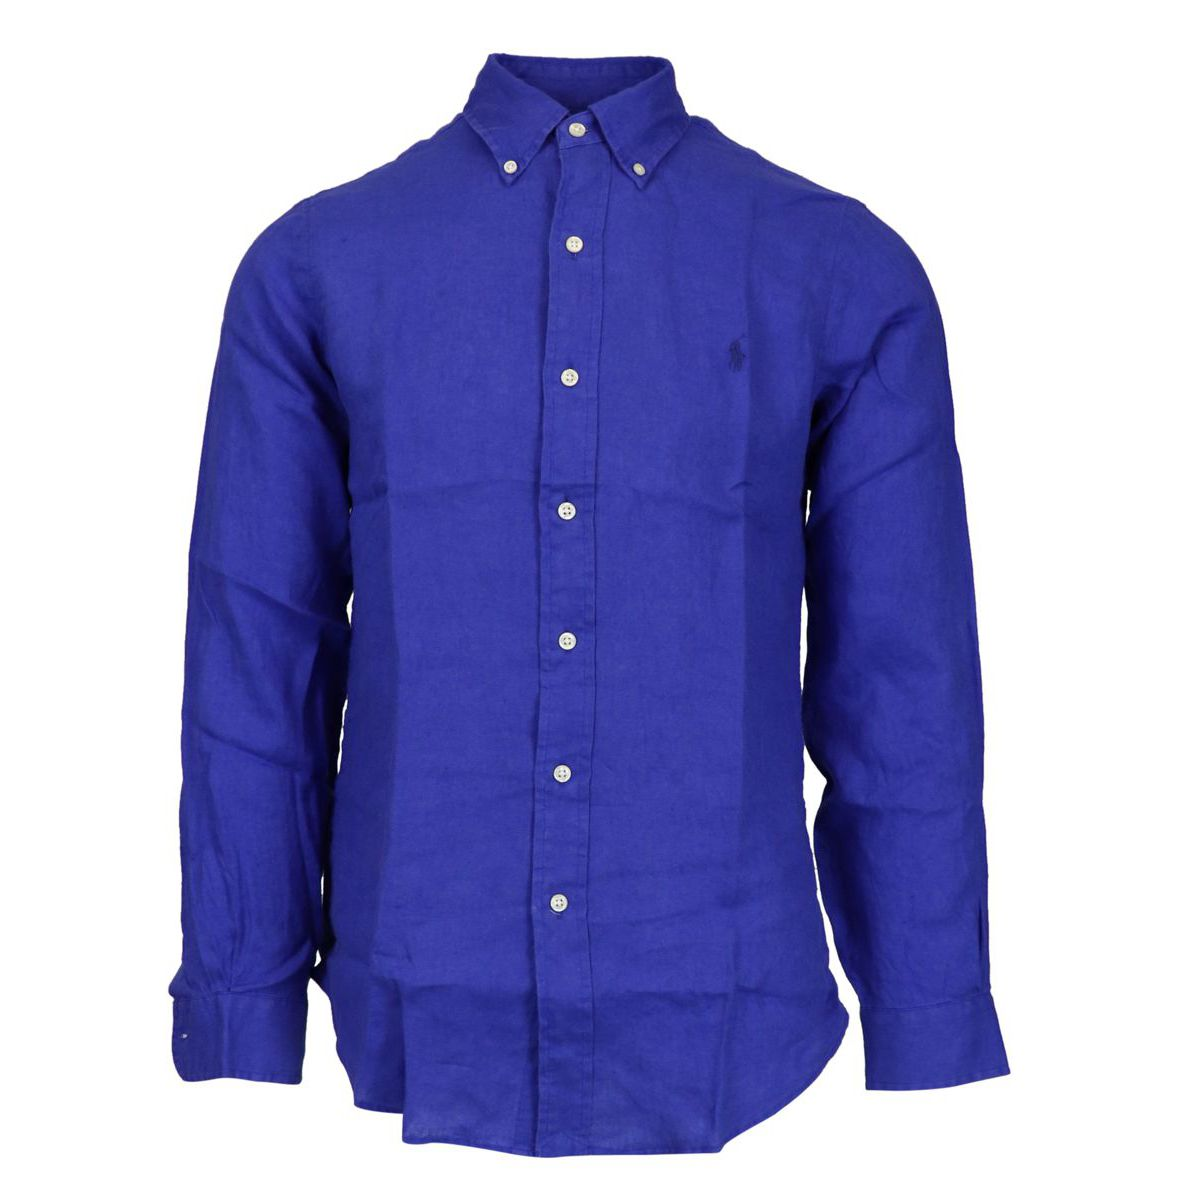 Custom-fit button-down linen shirt Royal Polo Ralph Lauren